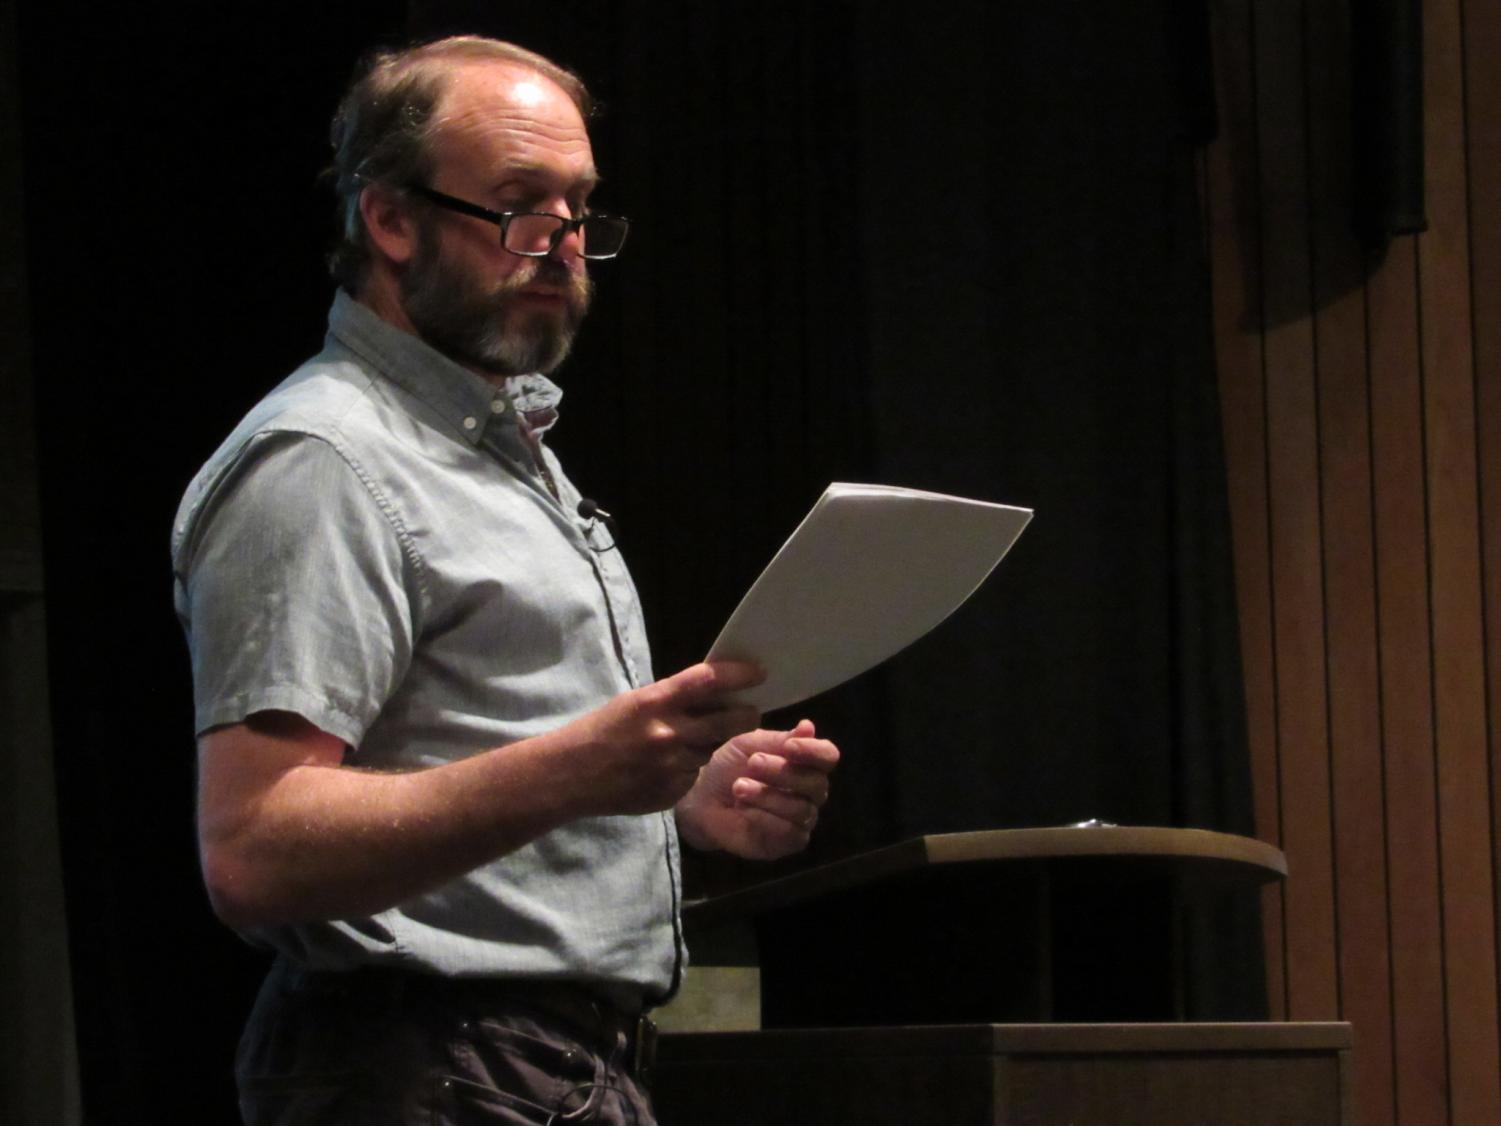 Dr. Rick Van Noy, an environmental author, urged students at yesterday's writers reading series event to take action on climate change.